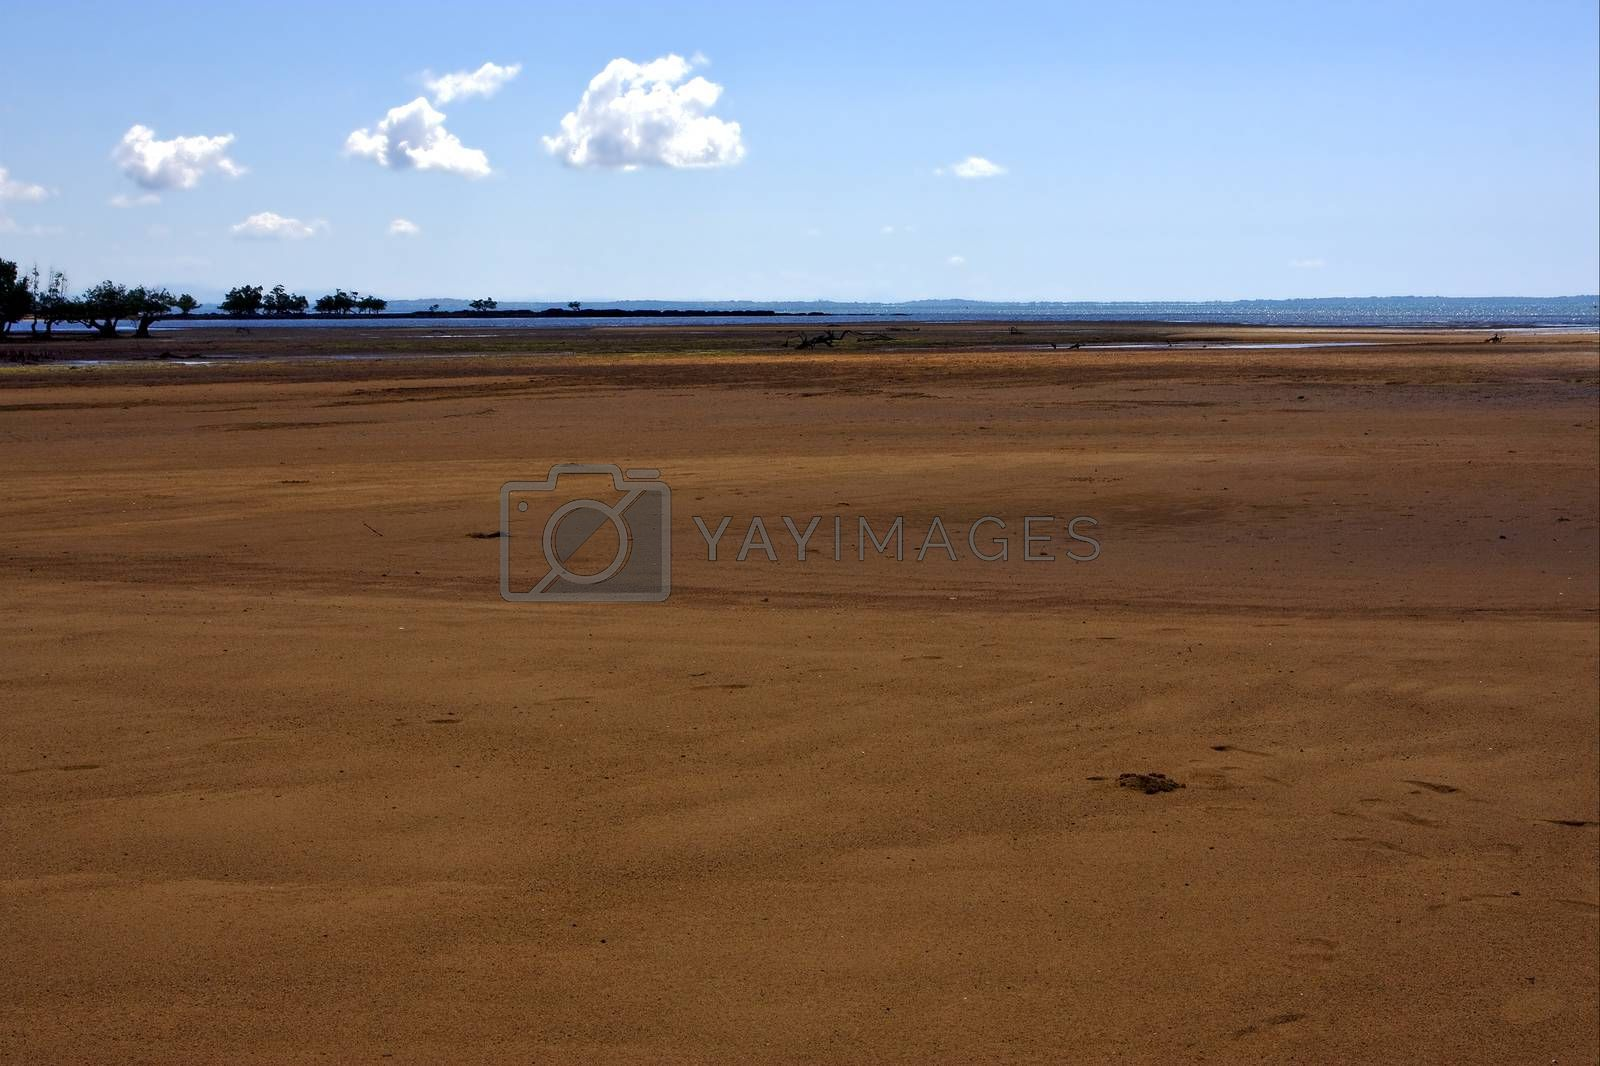 Royalty free image of  cloudy  madagascar by lkpro